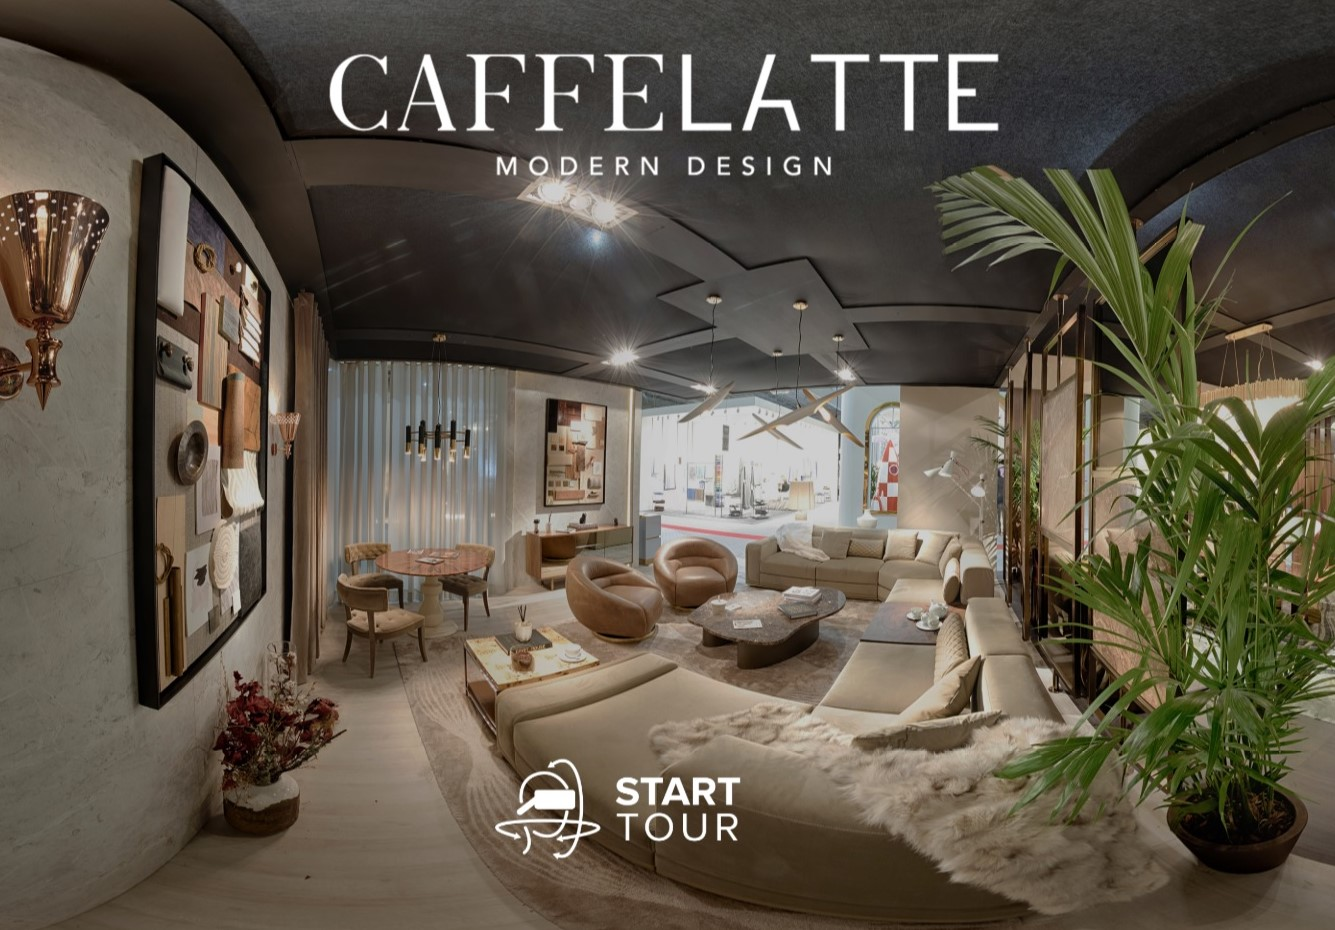 Maison Et Objet 2020: Luxury Stands' Virtual Tour  maison et objet 2020 Maison Et Objet 2020: Luxury Stands' Virtual Tour  maison objet 2020 luxury stands virtual tour 3